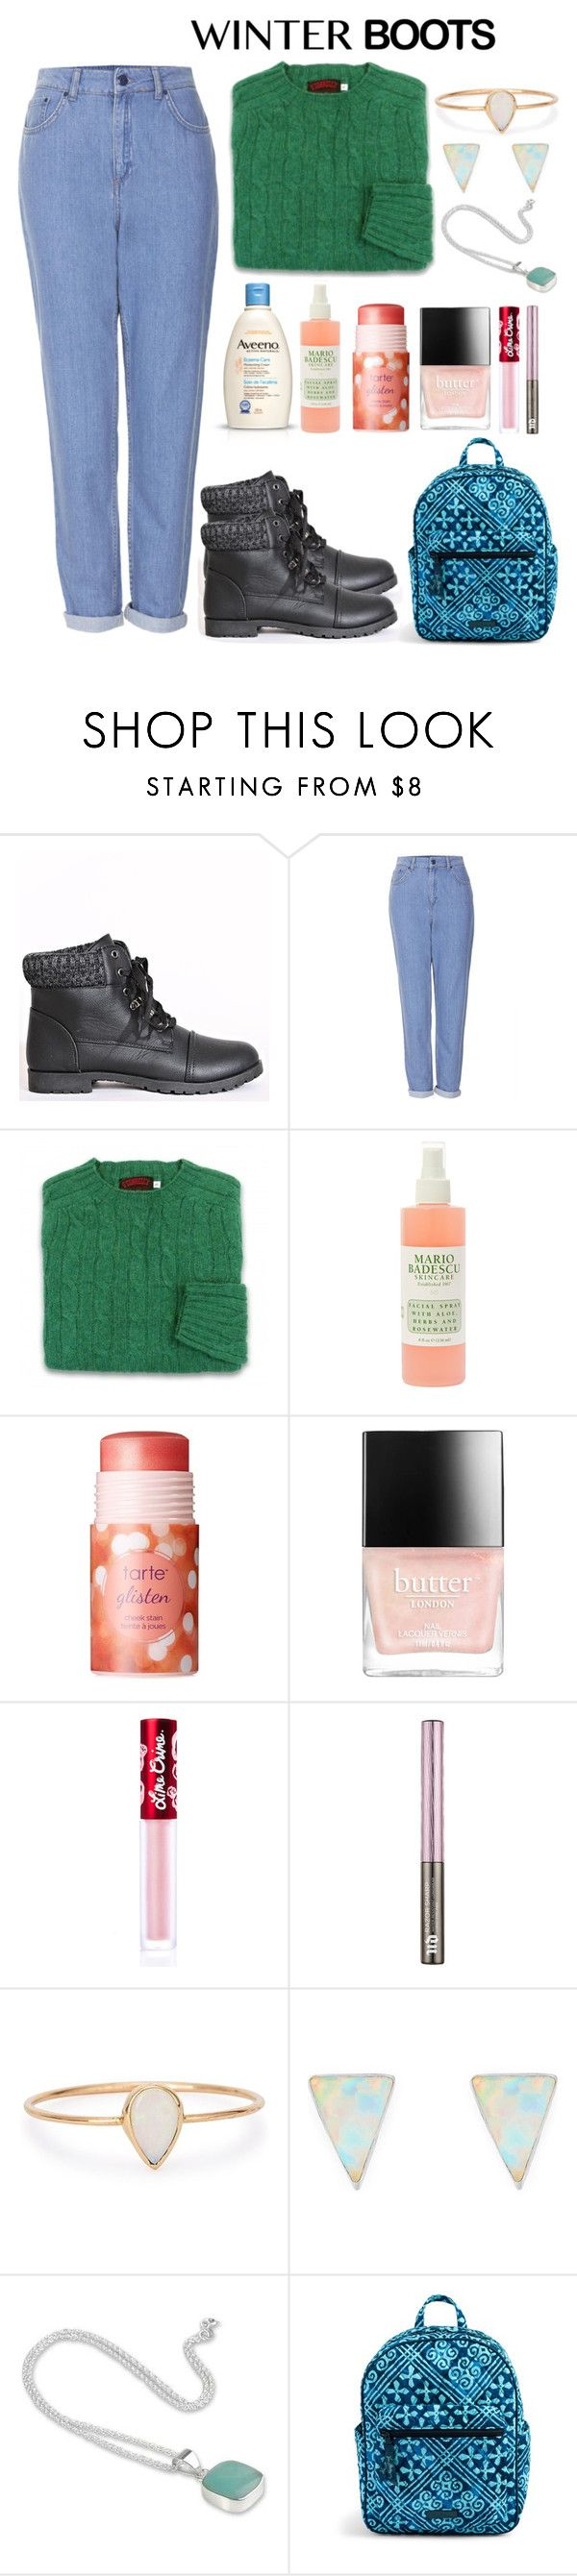 """""""Winter Boots"""" by sunrisemisty ❤ liked on Polyvore featuring Topshop, Mario Badescu Skin Care, Aveeno, tarte, Butter London, Lime Crime, Urban Decay, Catbird, Erica Weiner and NOVICA"""